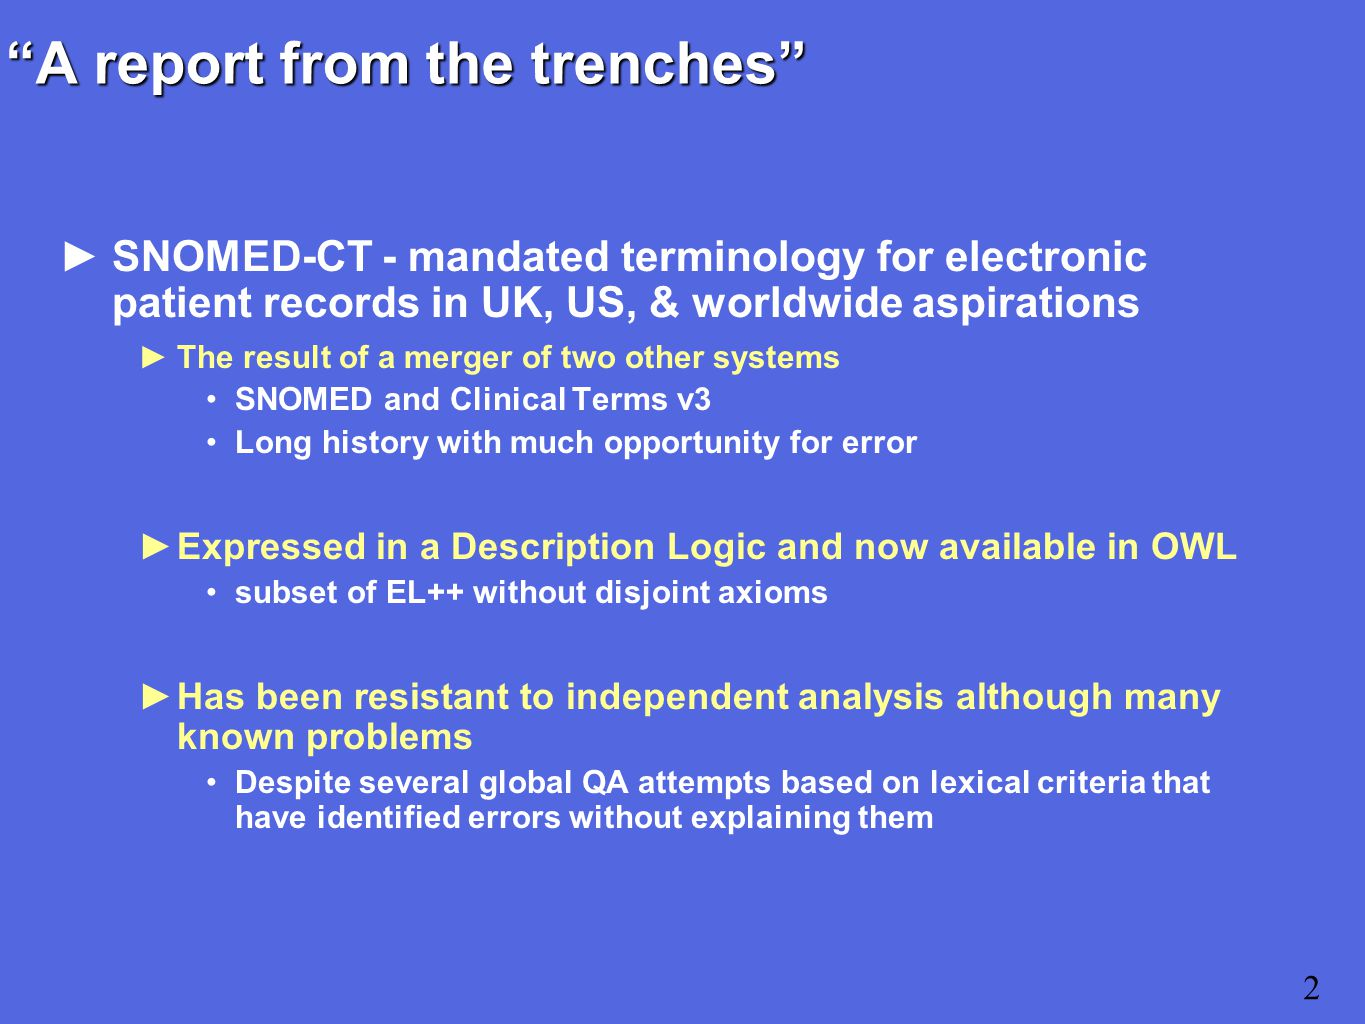 2 A report from the trenches ►SNOMED-CT - mandated terminology for electronic patient records in UK, US, & worldwide aspirations ►The result of a merger of two other systems SNOMED and Clinical Terms v3 Long history with much opportunity for error ►Expressed in a Description Logic and now available in OWL subset of EL++ without disjoint axioms ►Has been resistant to independent analysis although many known problems Despite several global QA attempts based on lexical criteria that have identified errors without explaining them